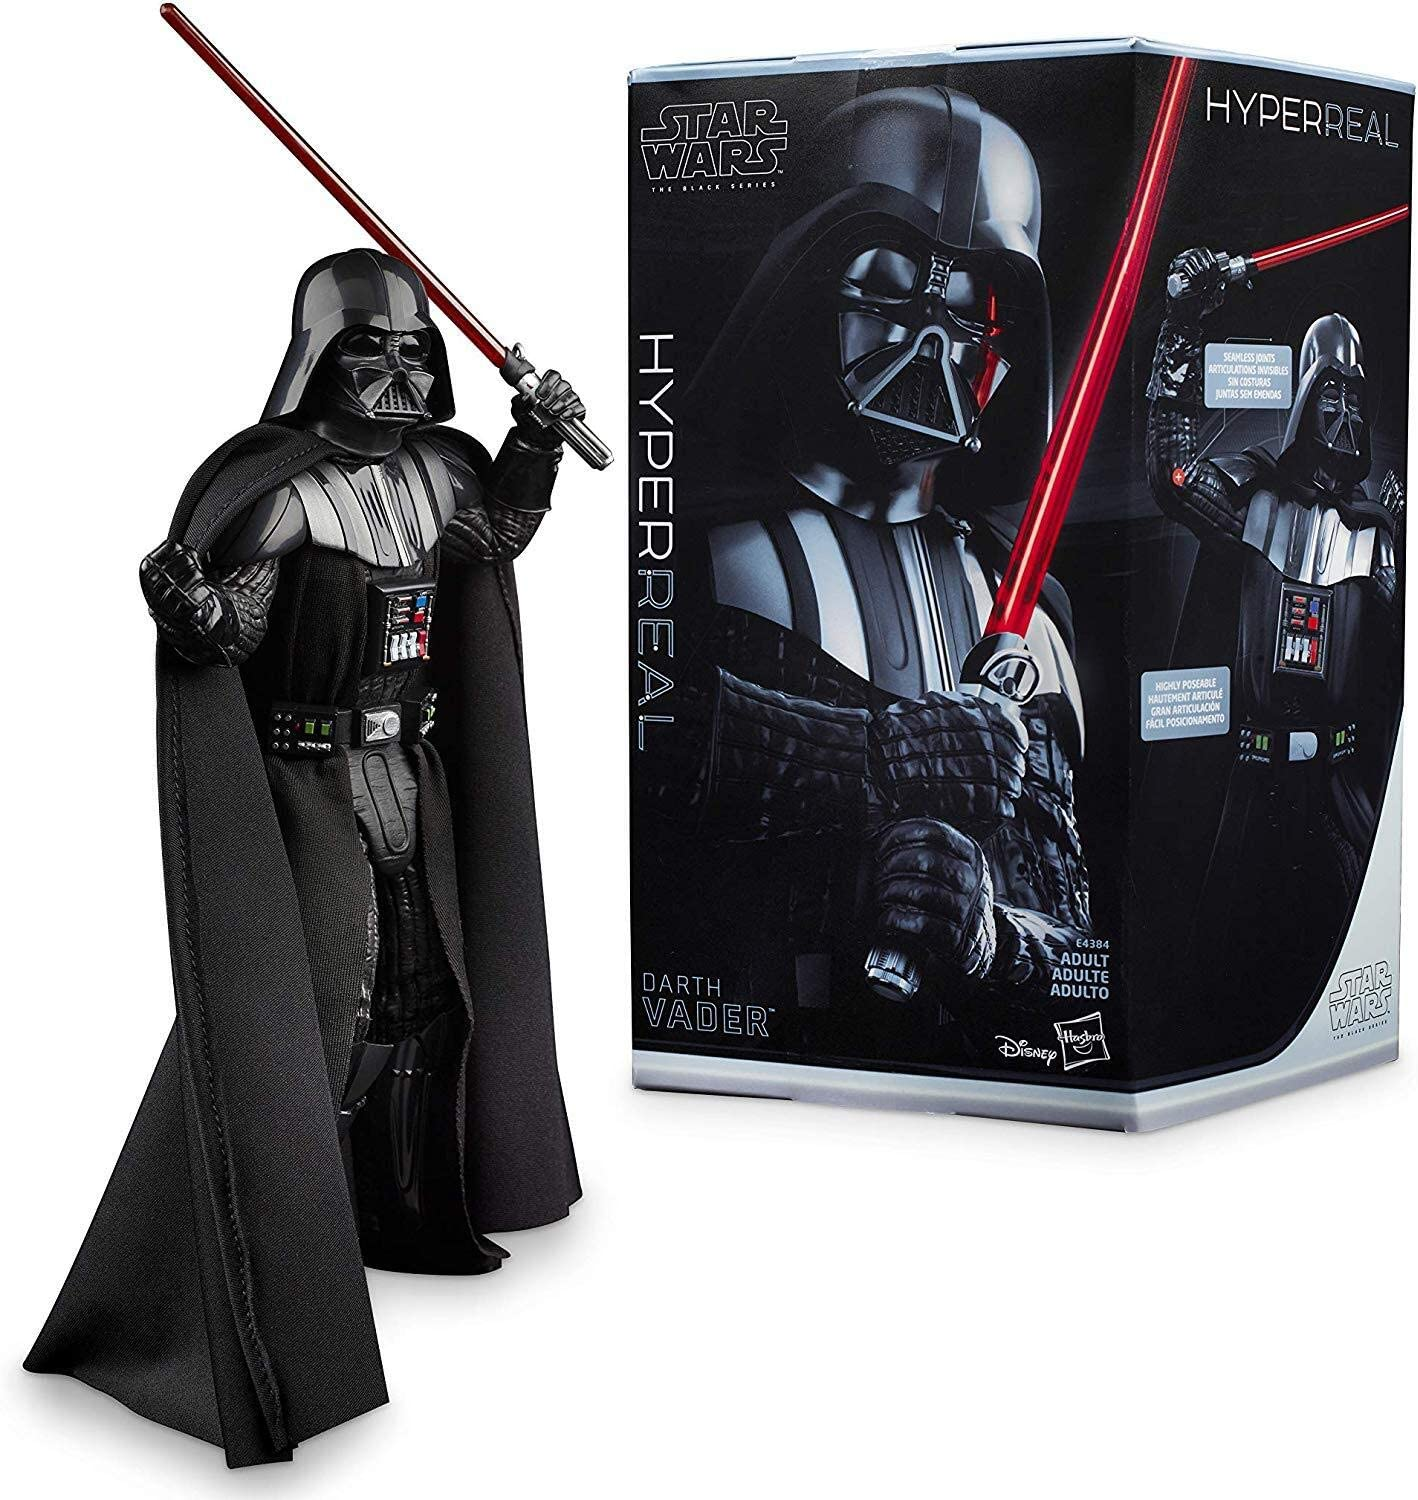 Star Wars The Black Series Hyperreal Episode V The Empire Strikes Back 8